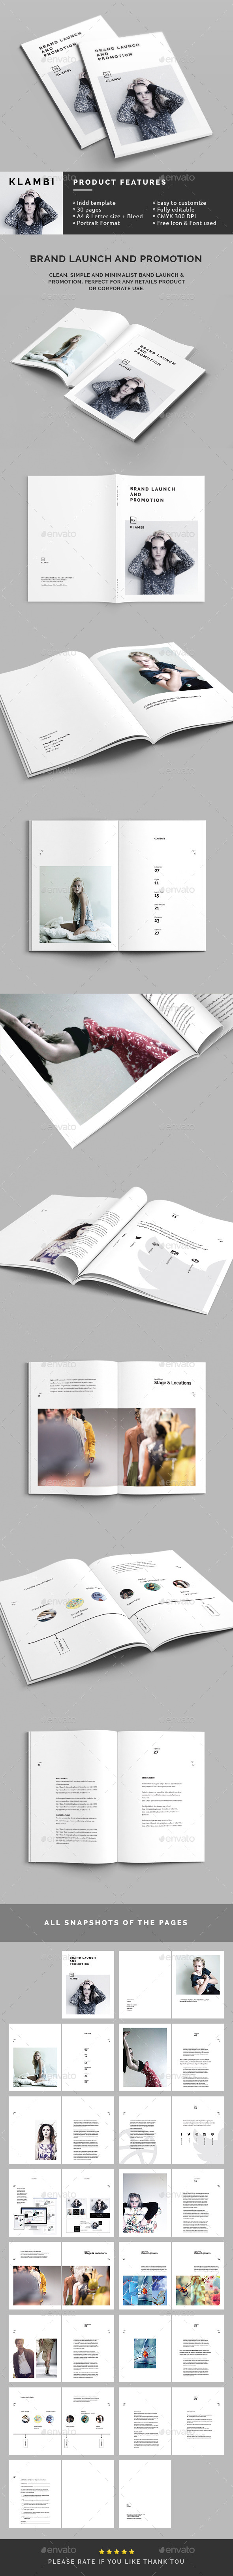 GraphicRiver Brand Launch and Promotion 10920002